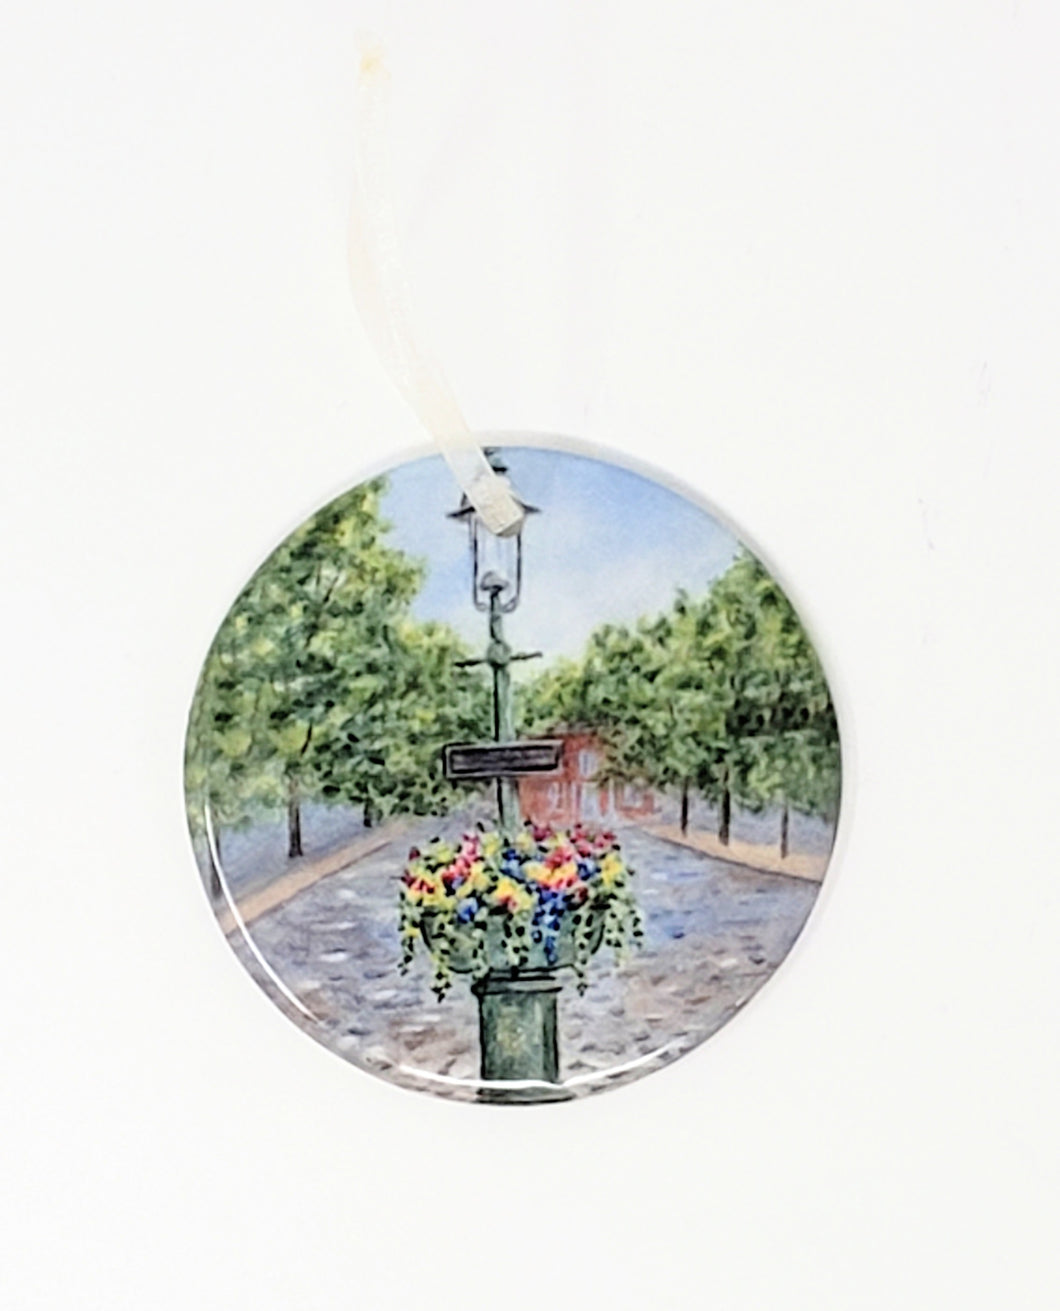 Nantucket Christmas Ornament, Nantucket Ceramic Ornaments Cape Cod gift Christmas gift for dad small gift for mom - Leigh Barry Watercolors